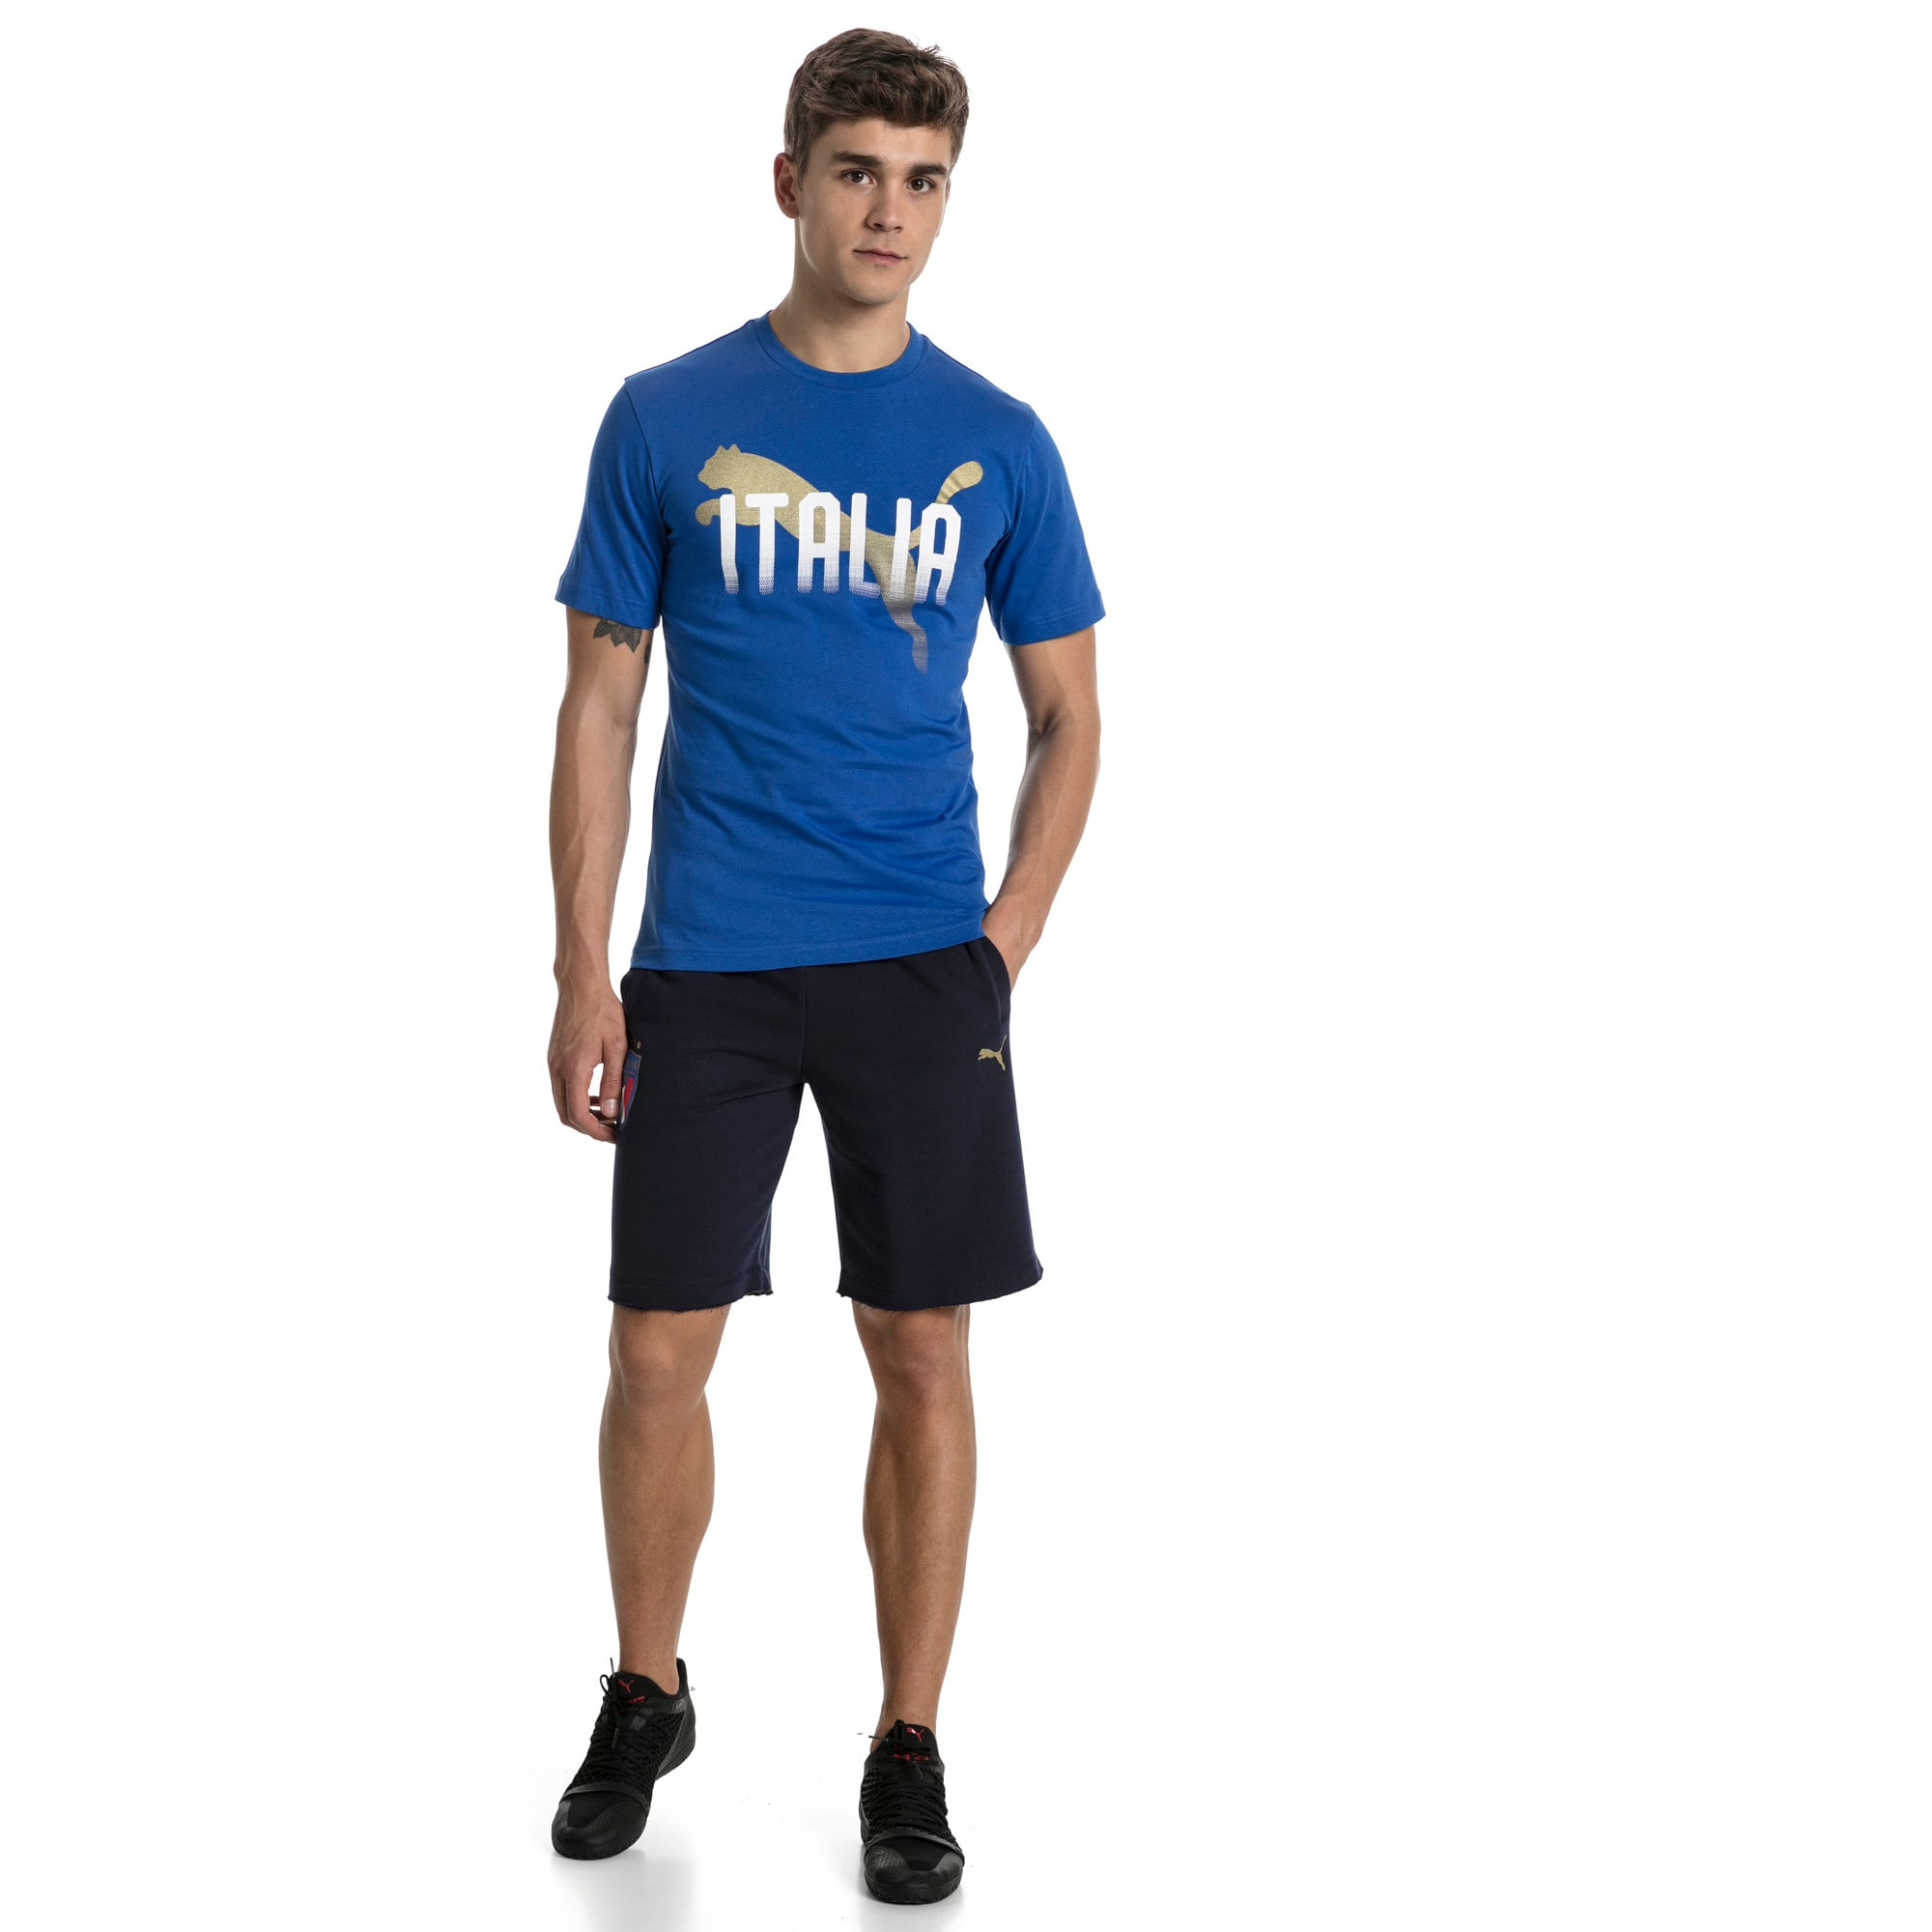 FIGC Men's Italia Fanwear Graphic Tee, Team Power Blue, large